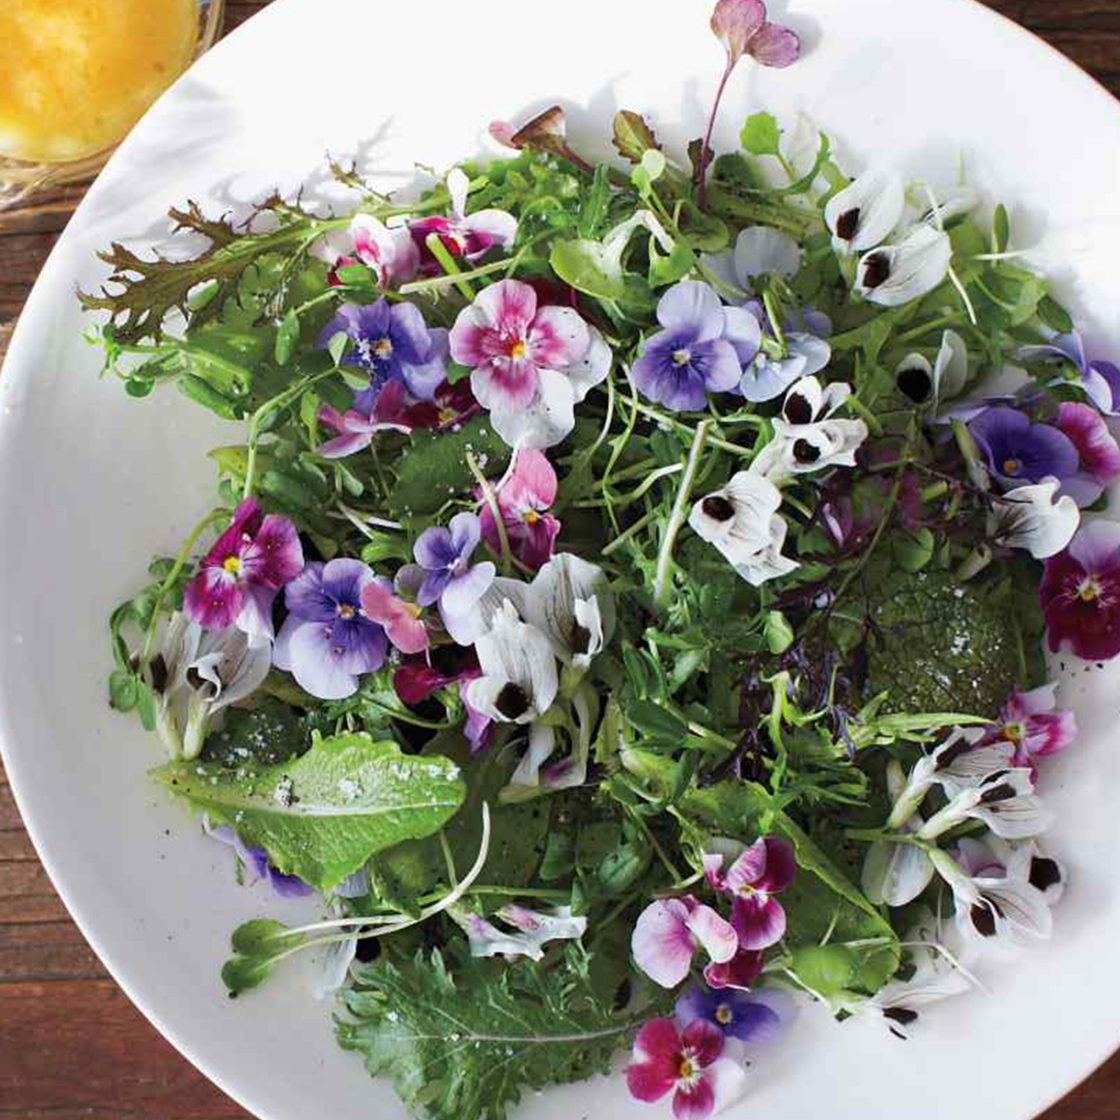 Eden Valley Artisans floral salad